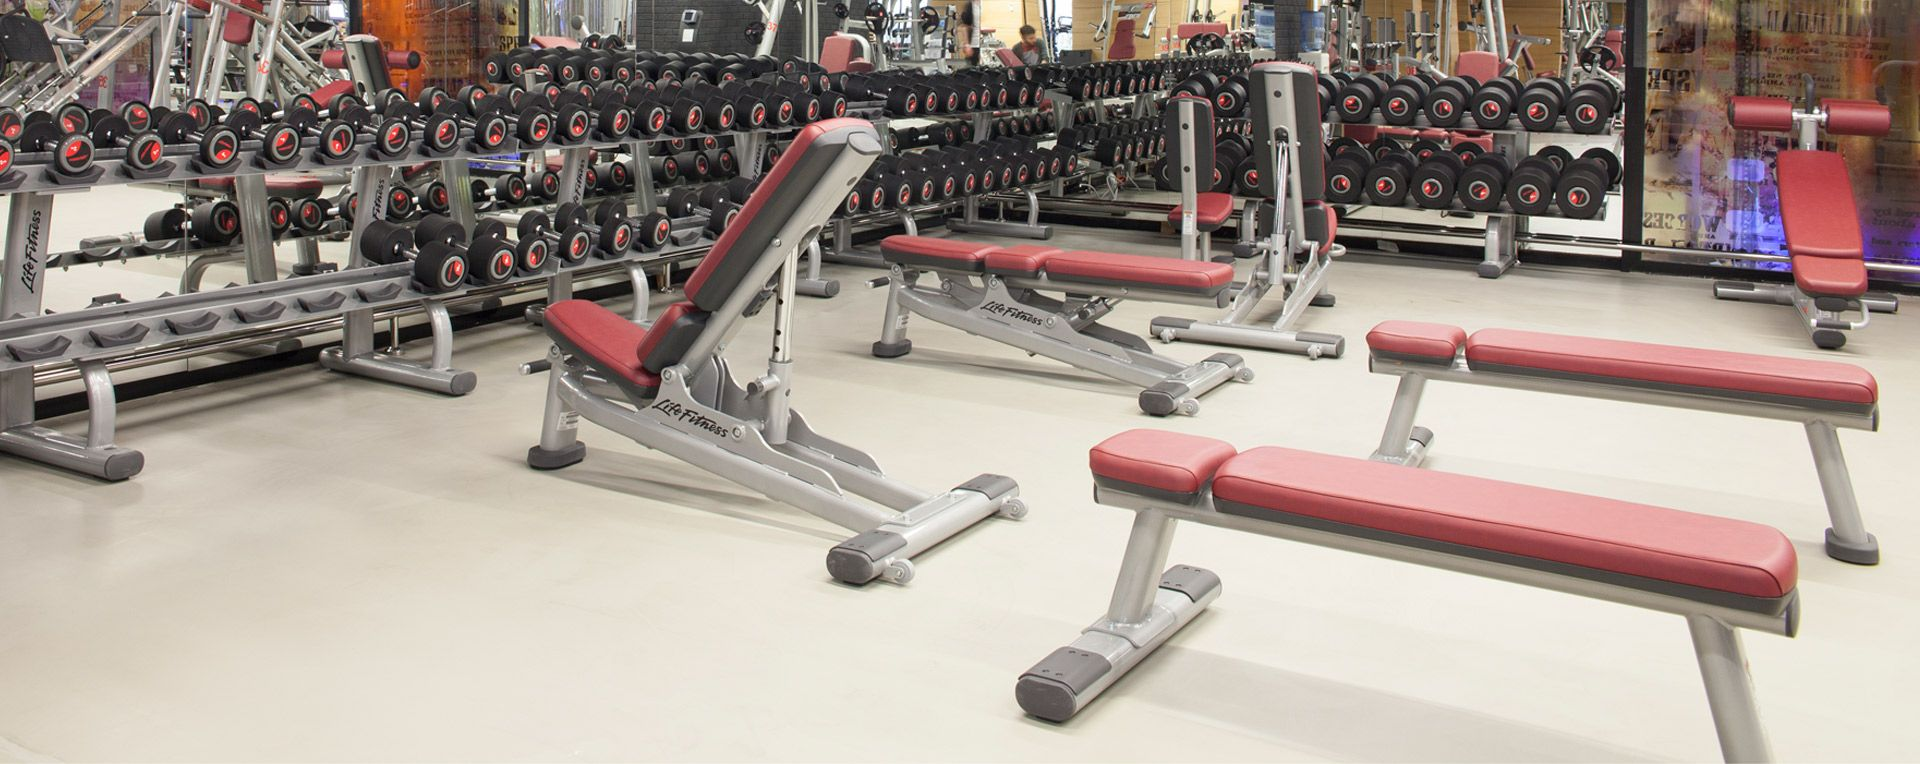 Life fitness signature series benches racks in lets club